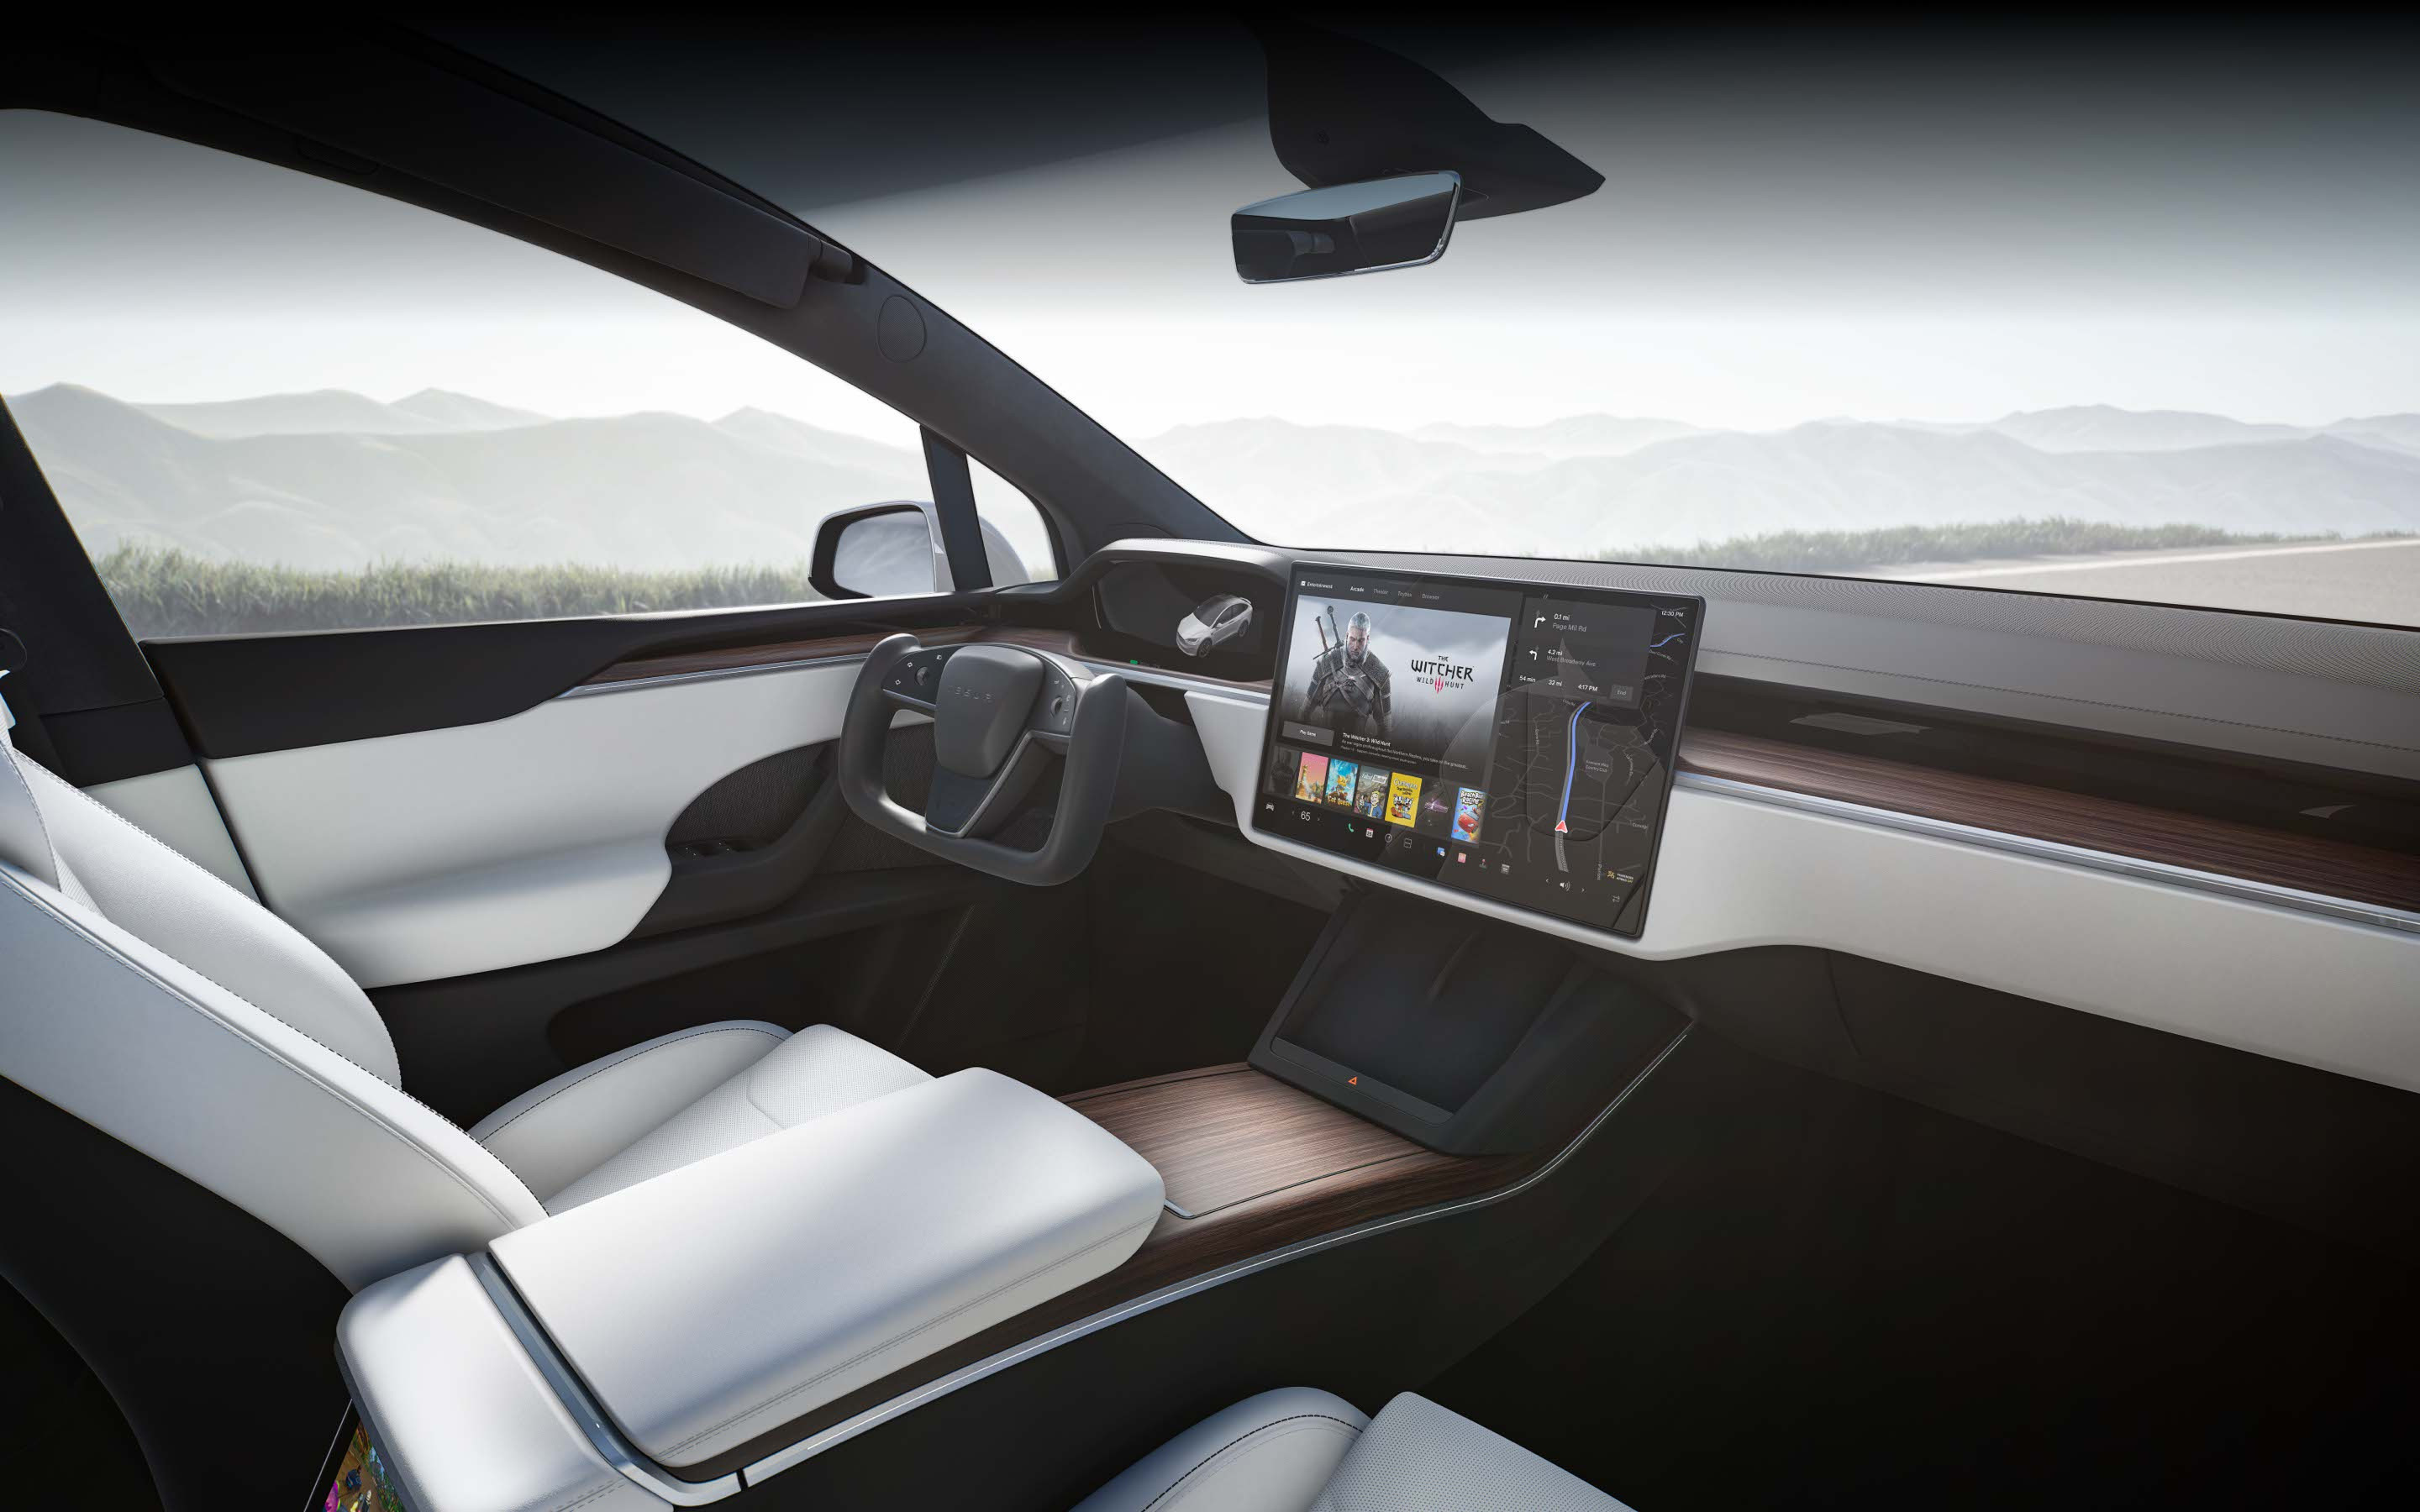 Bild: Model X Interieur